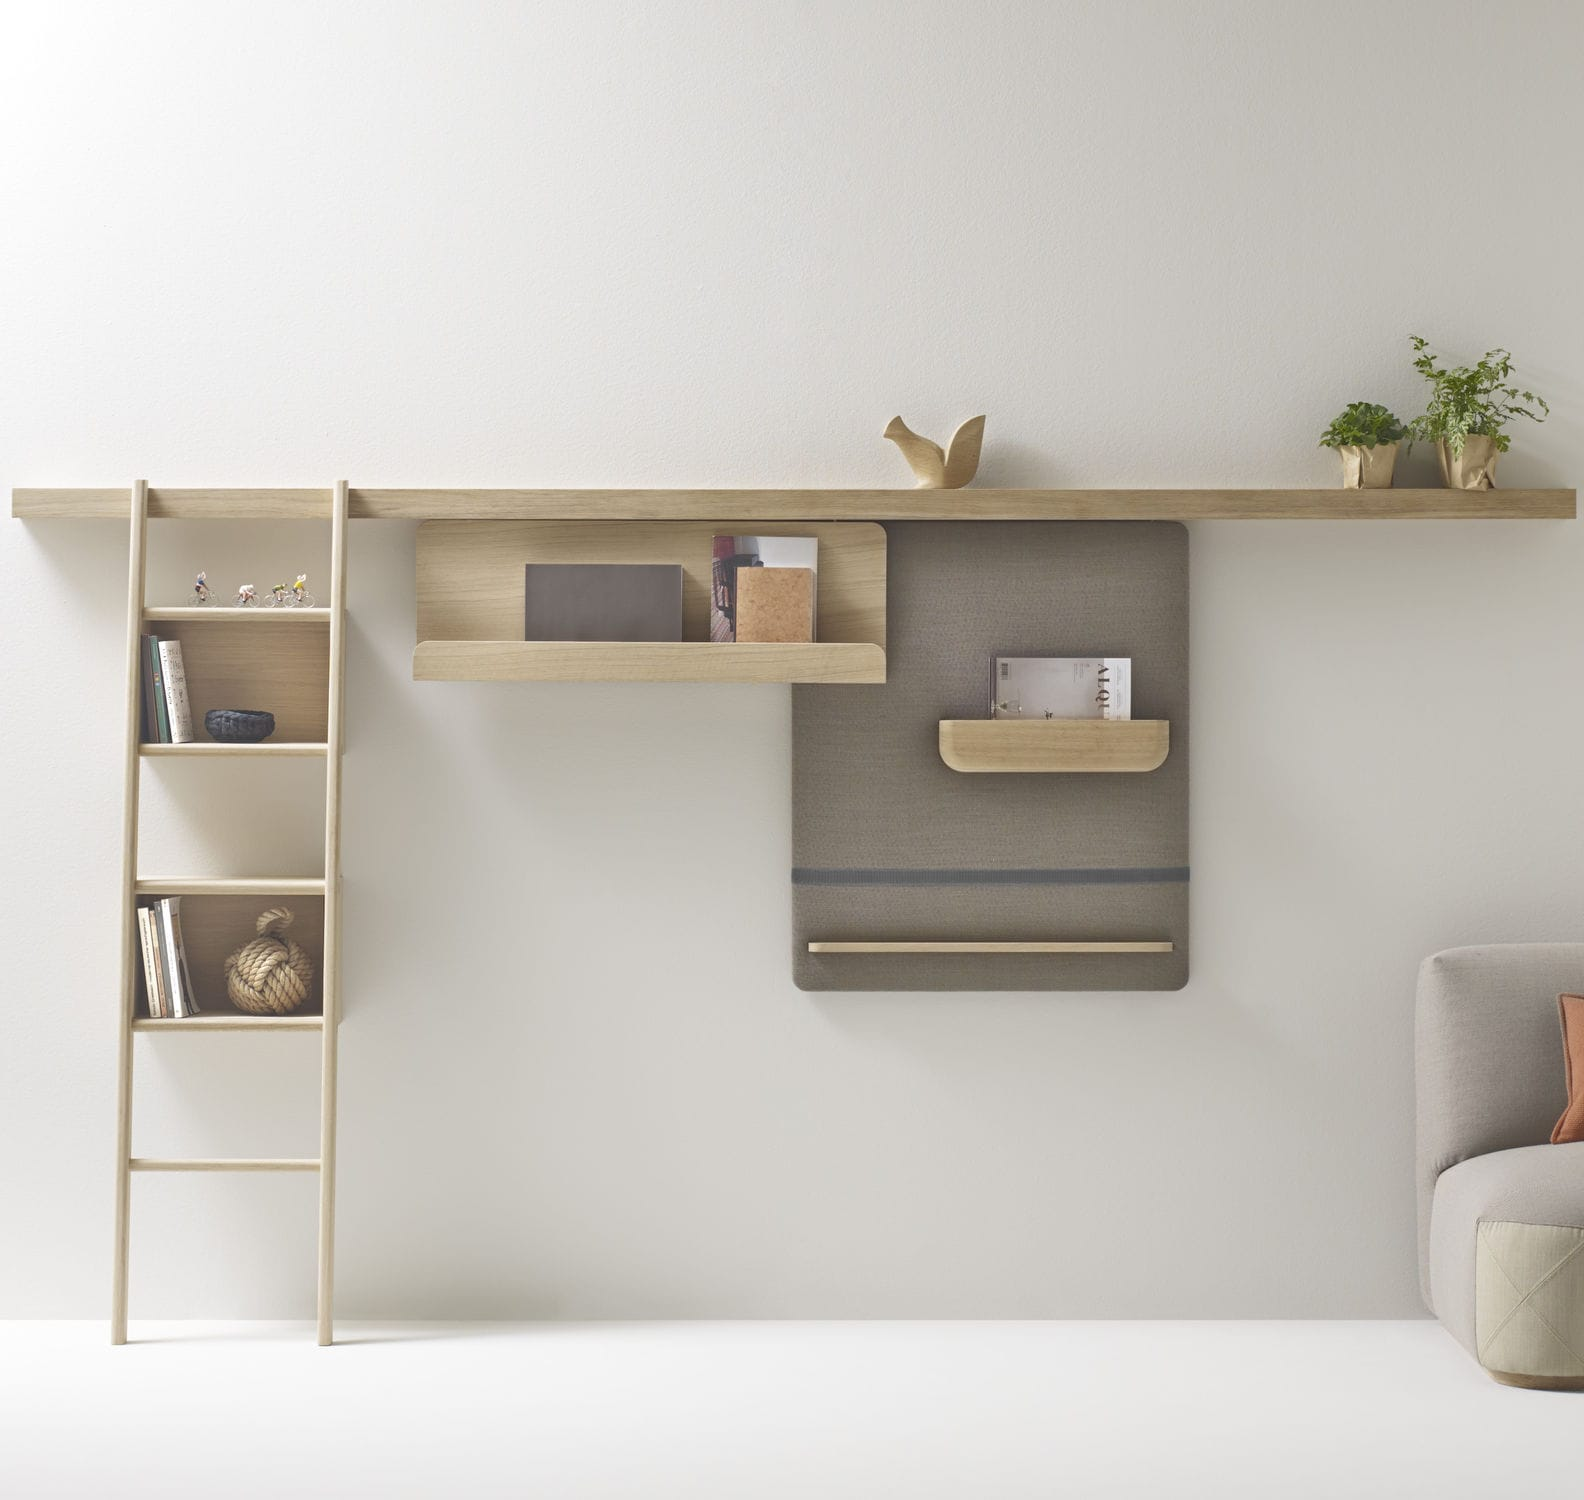 wallmounted shelving system solid wood residential zutik by jean louis iratzoki